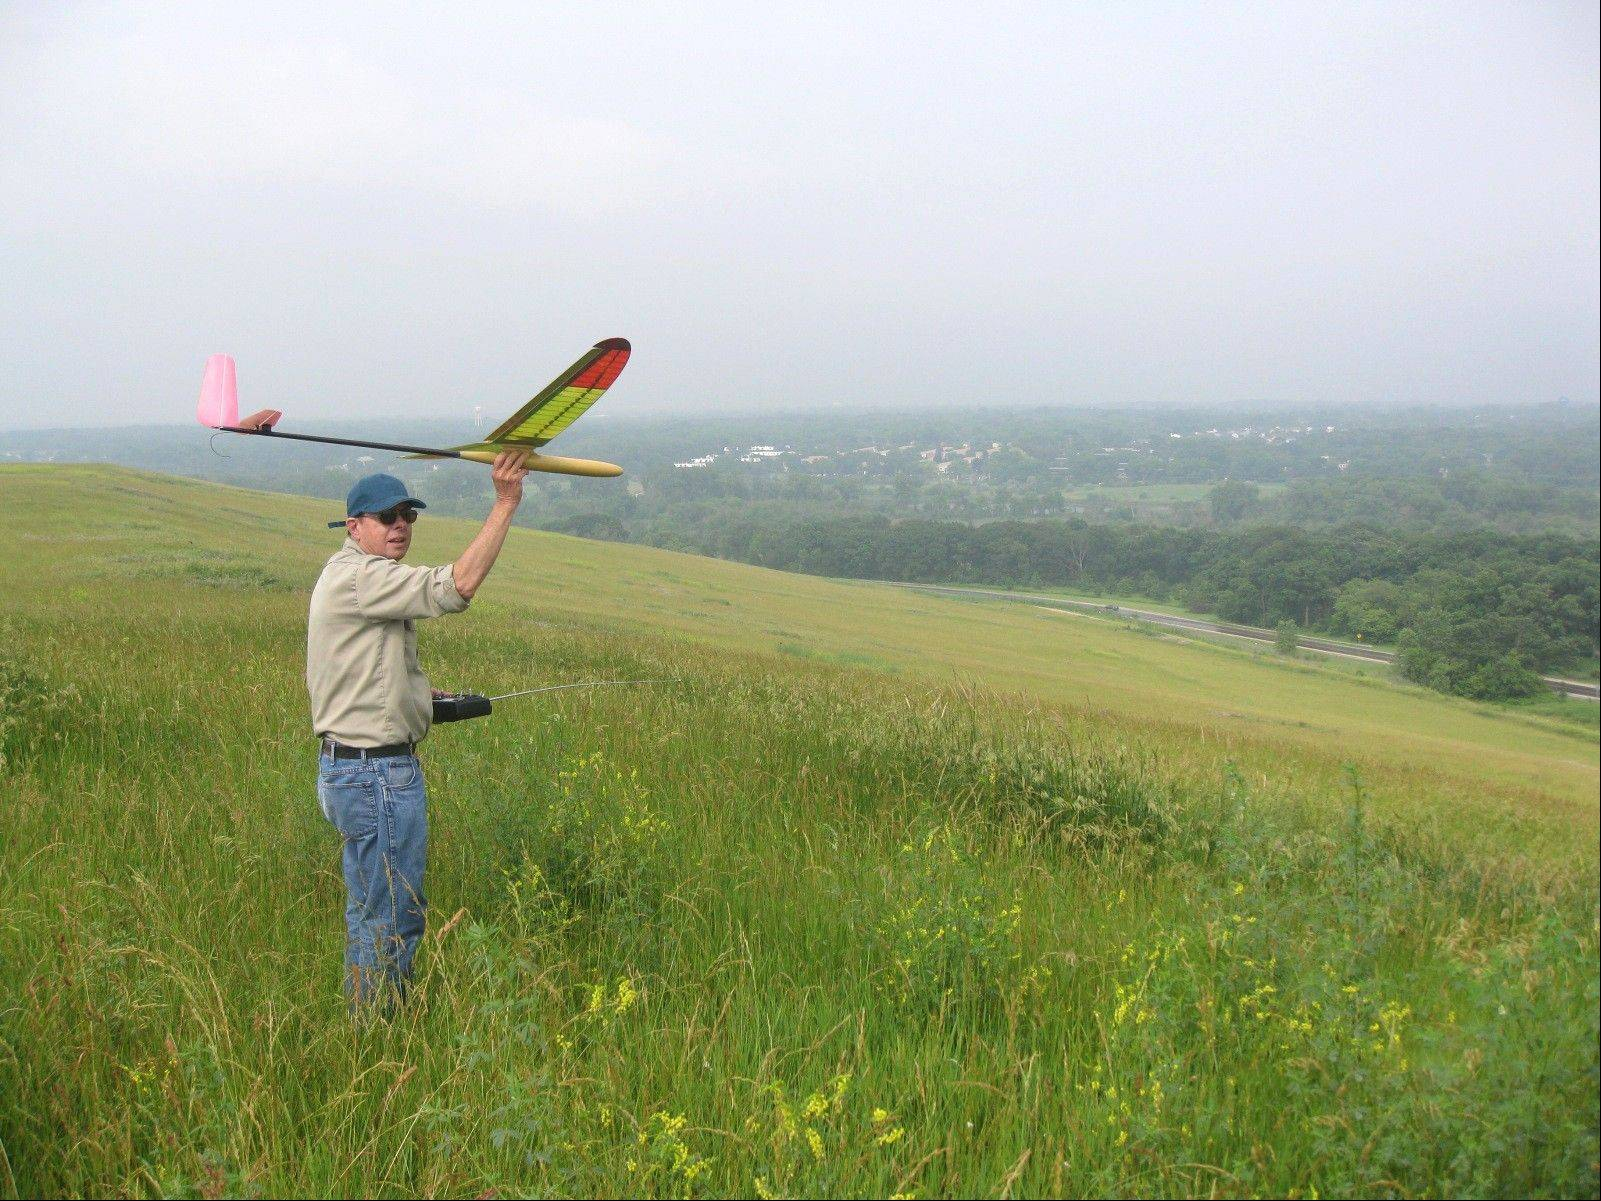 Permit holders may fly nonpowered model gliders and sailplanes at the Greene Valley Forest Preserve overlook.